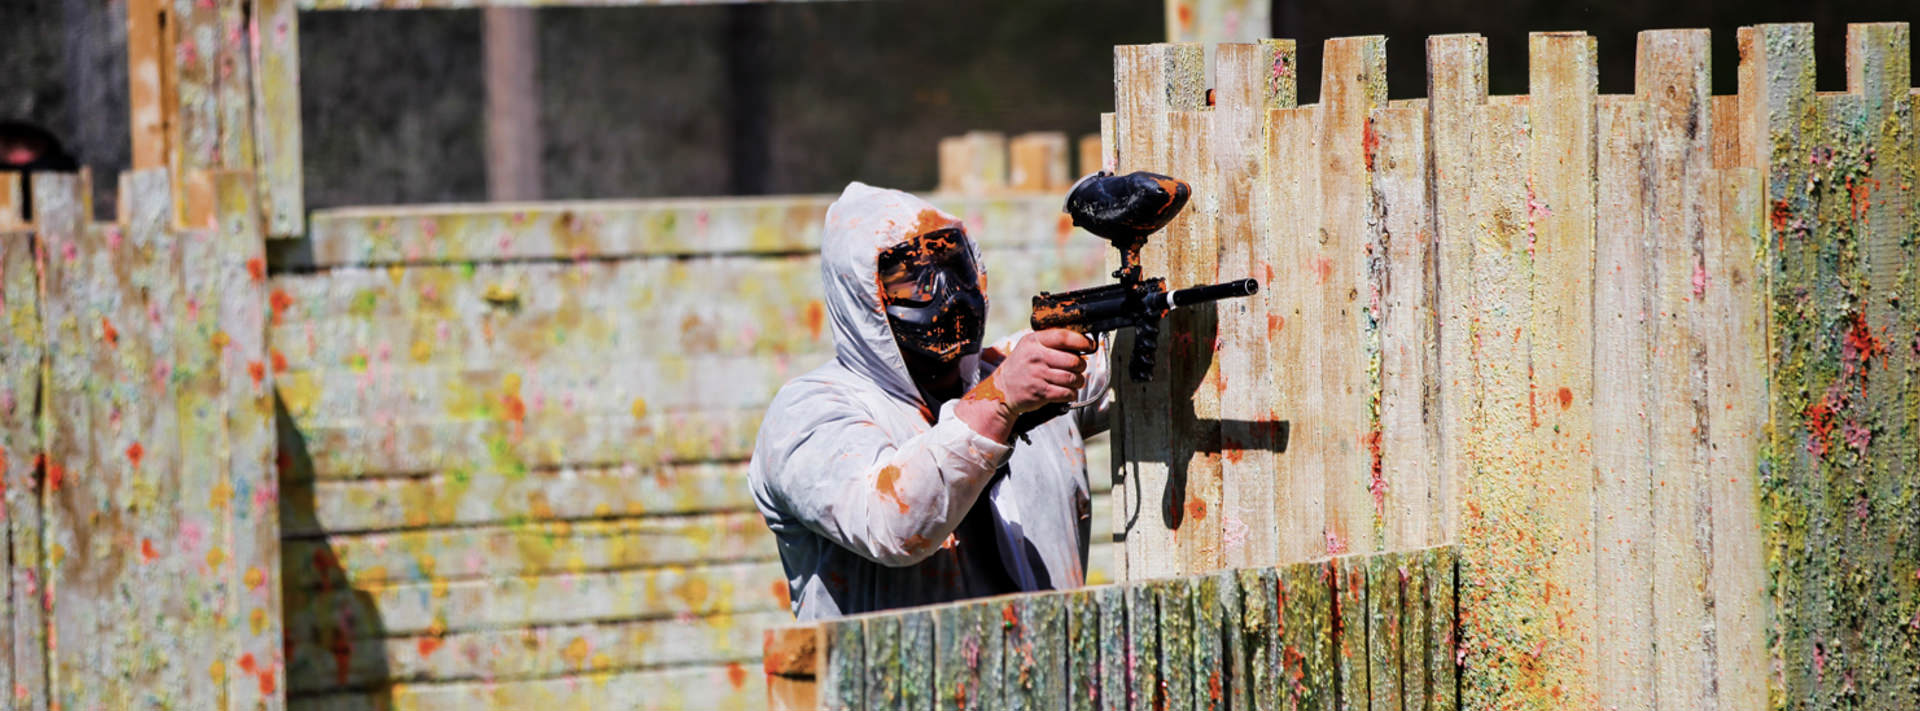 Paintball_Limpark_Limburg_Frankfurt_1